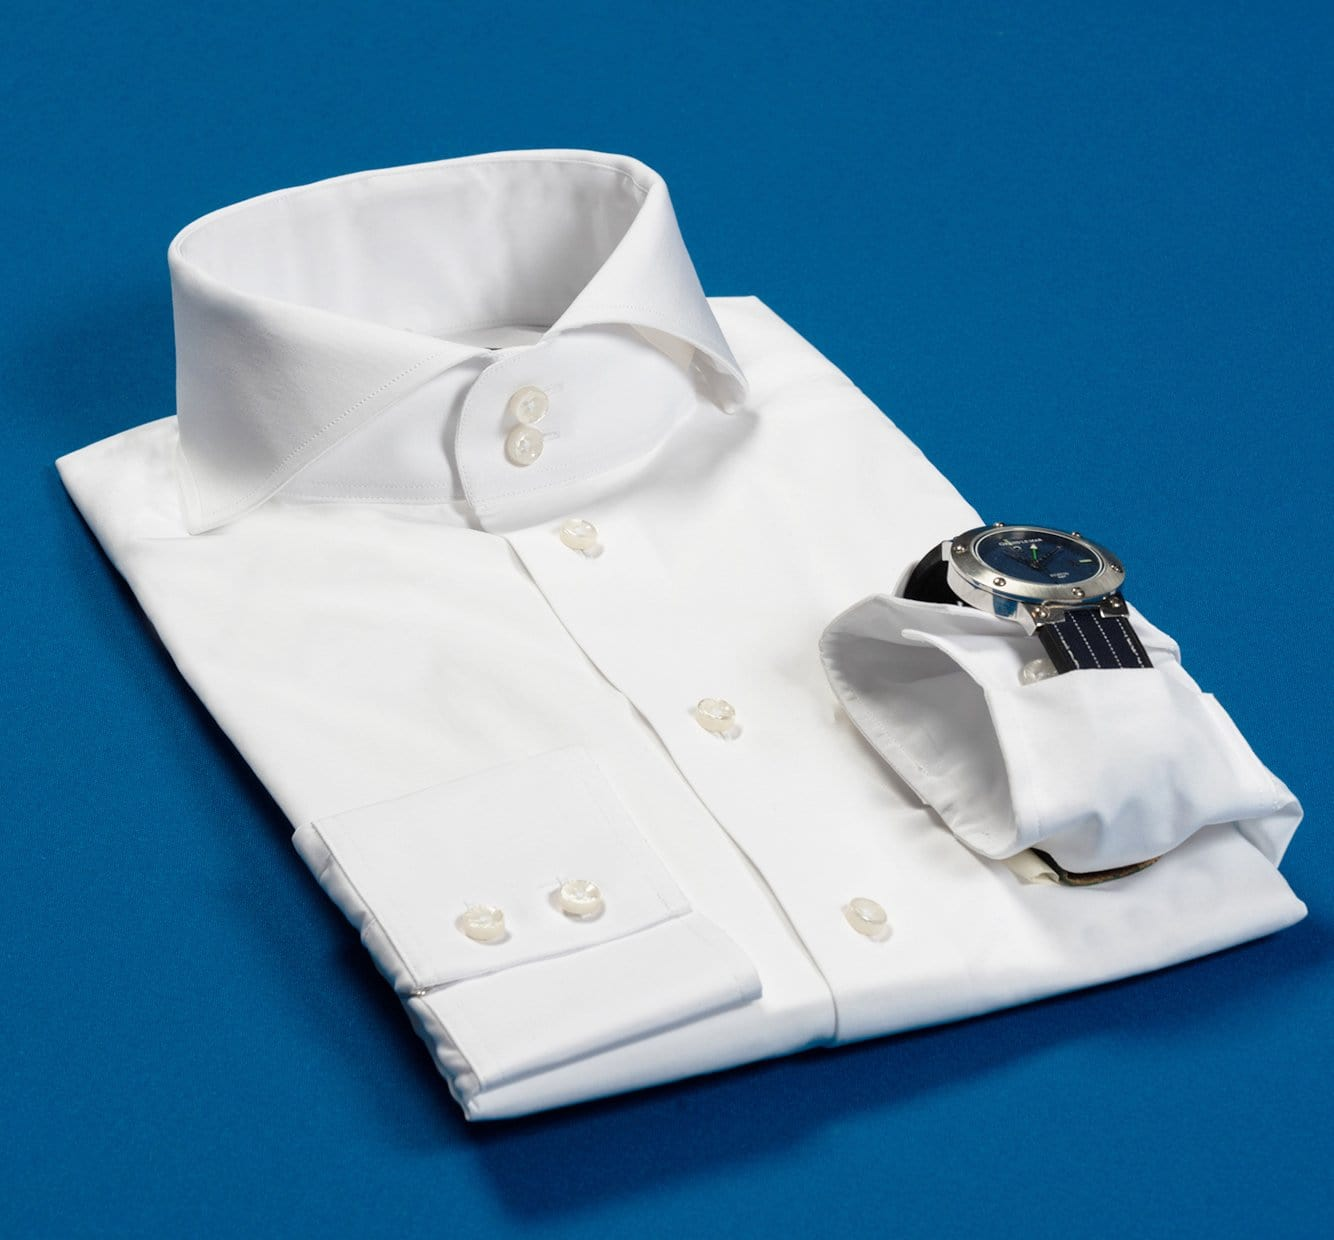 L'avvocato White Shirt - Grand Le Mar